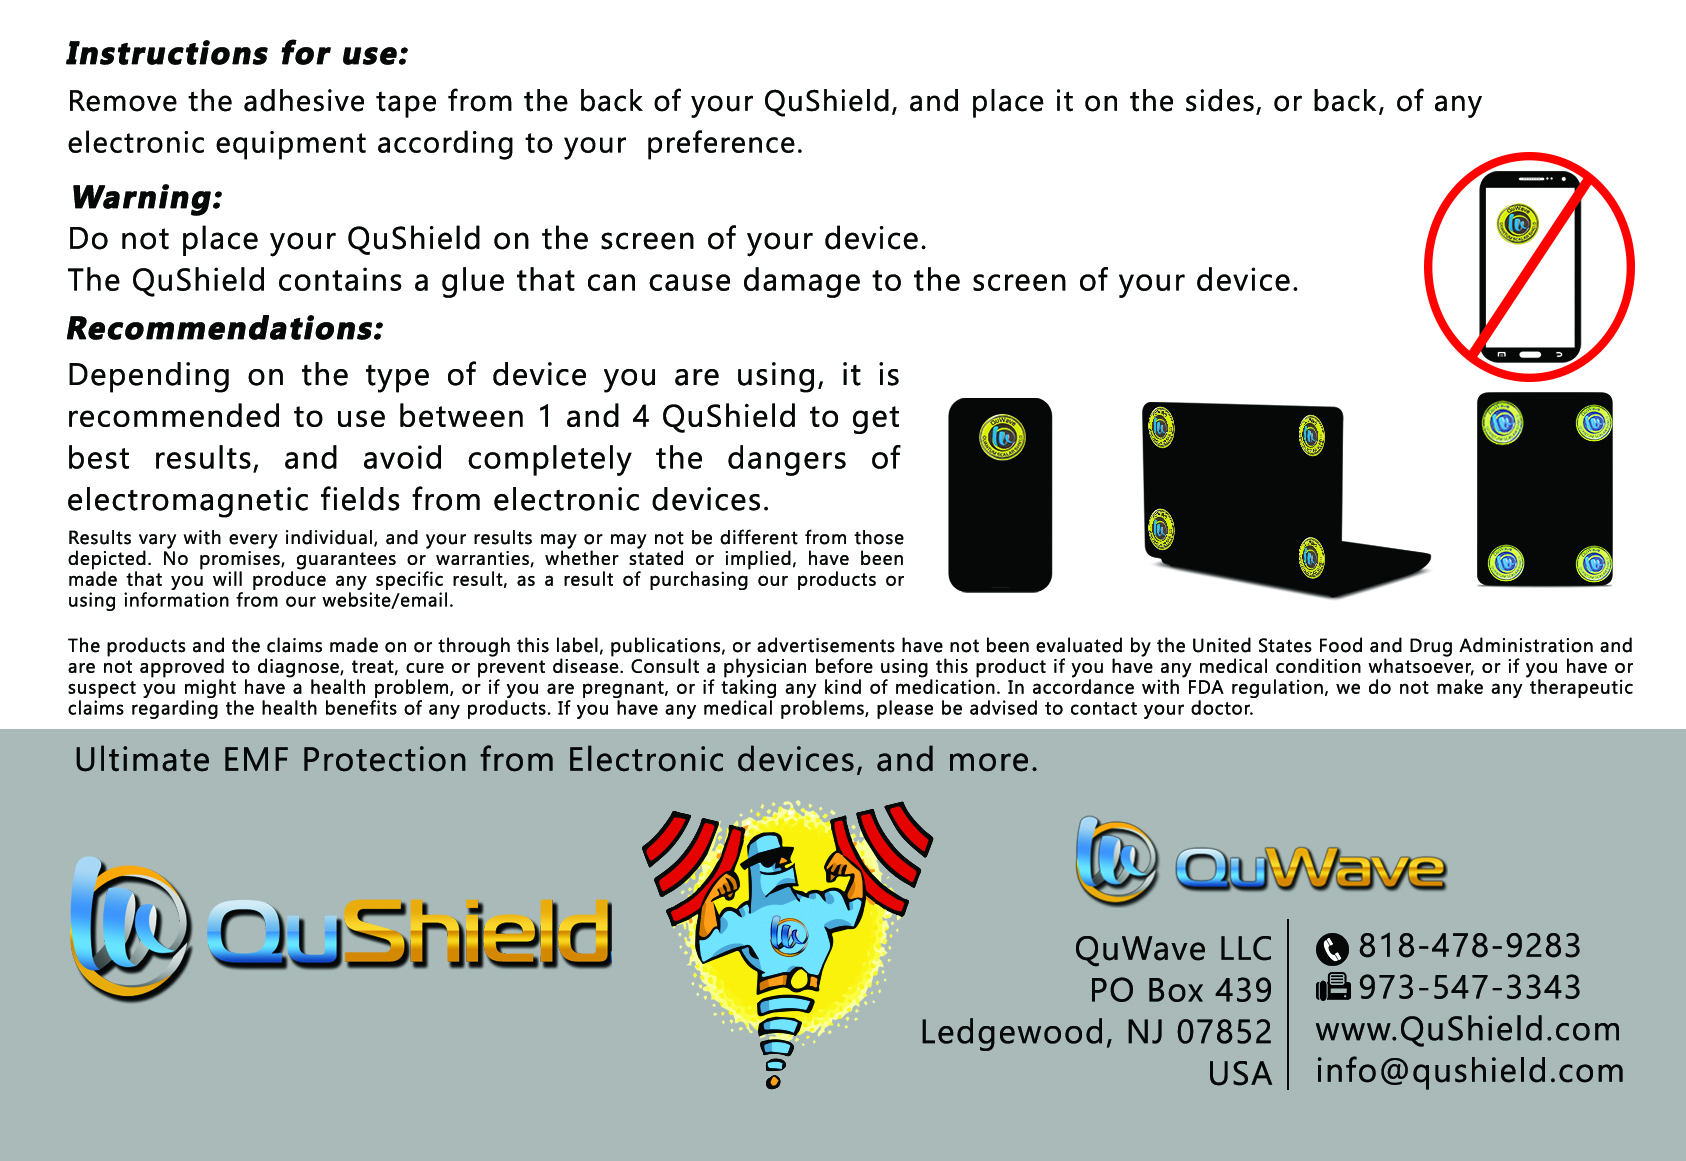 QuShield EMF protection sticker Postcard Back